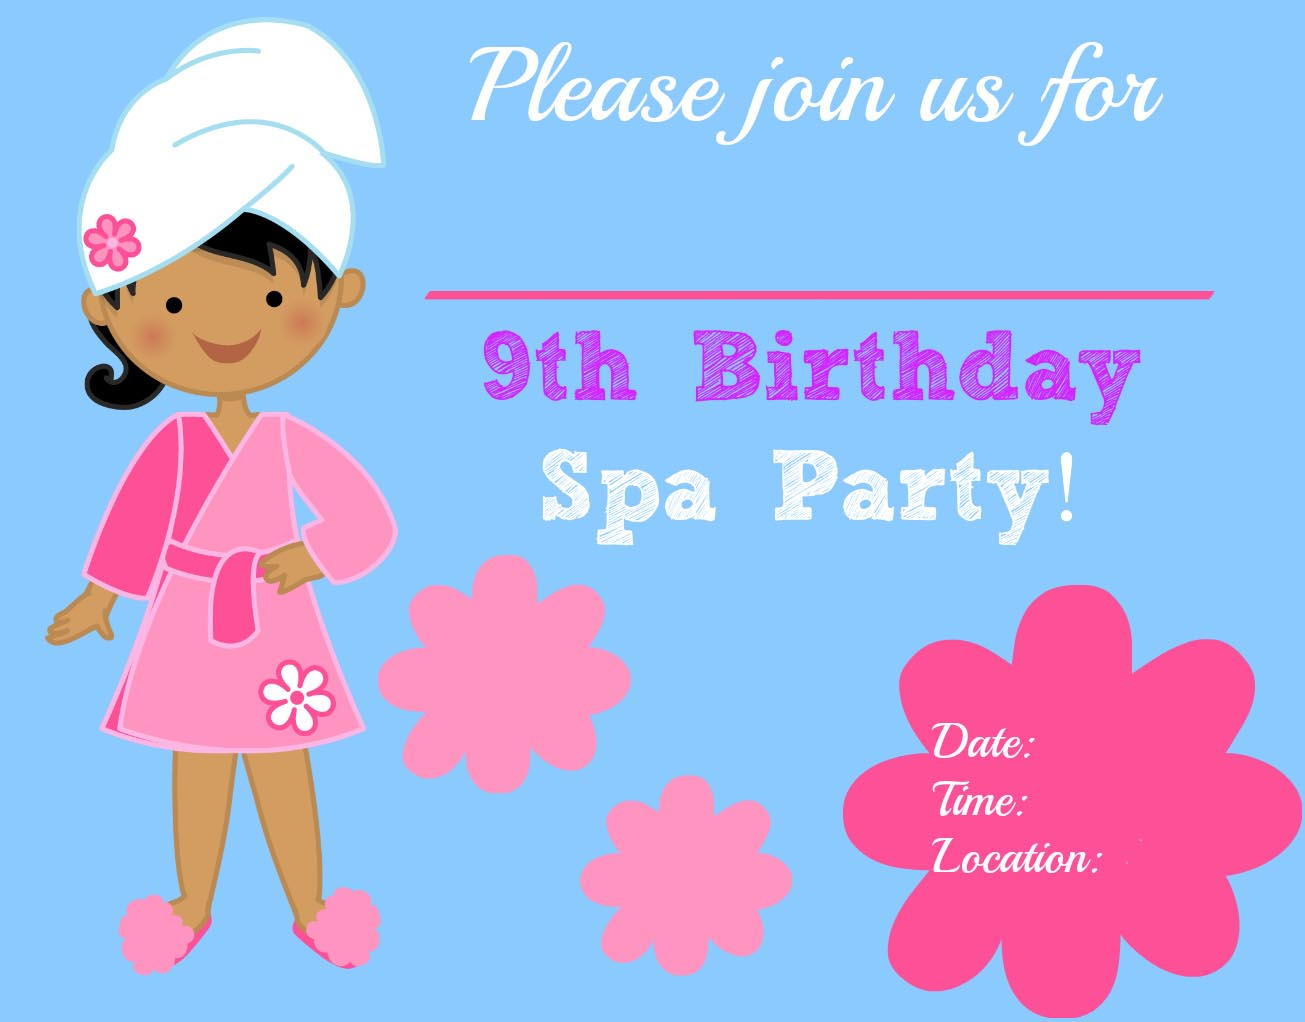 Making Spa Party Invitations